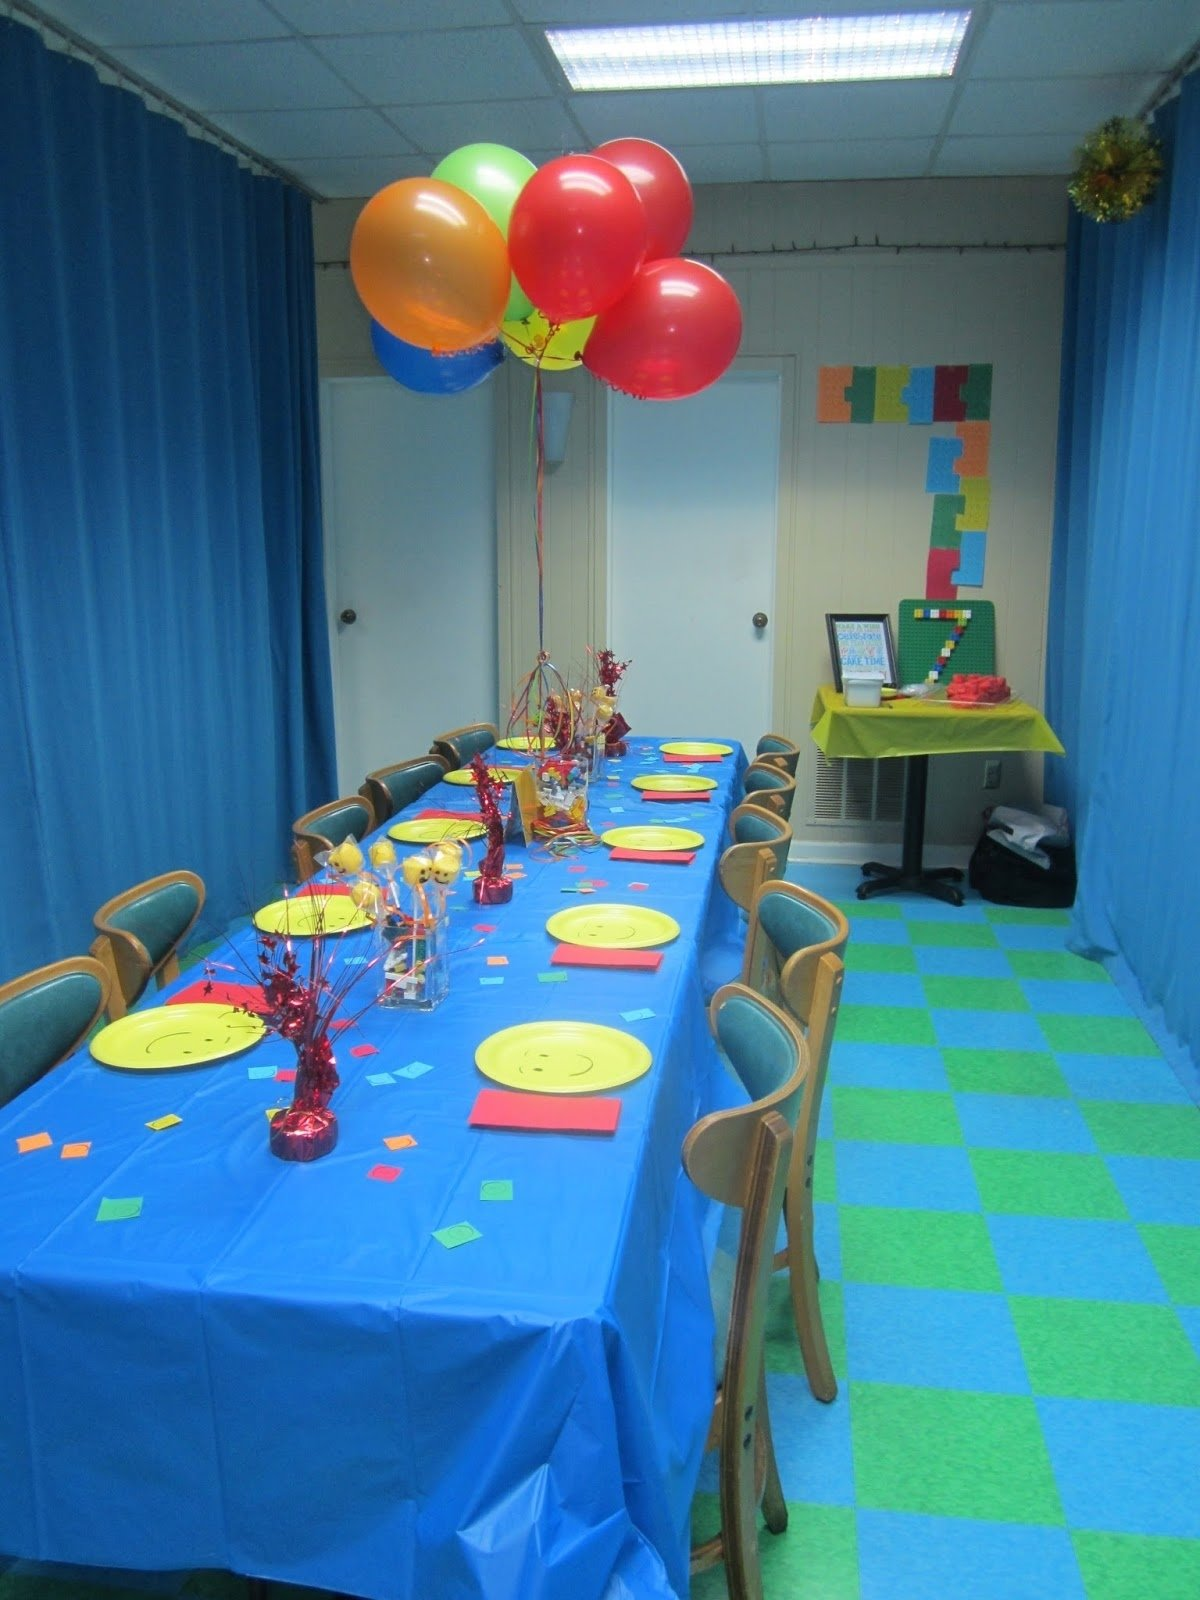 10 Stylish Party Ideas For 13 Year Old Boy themes birthday good ideas for a 13 year old birthday party girl 4